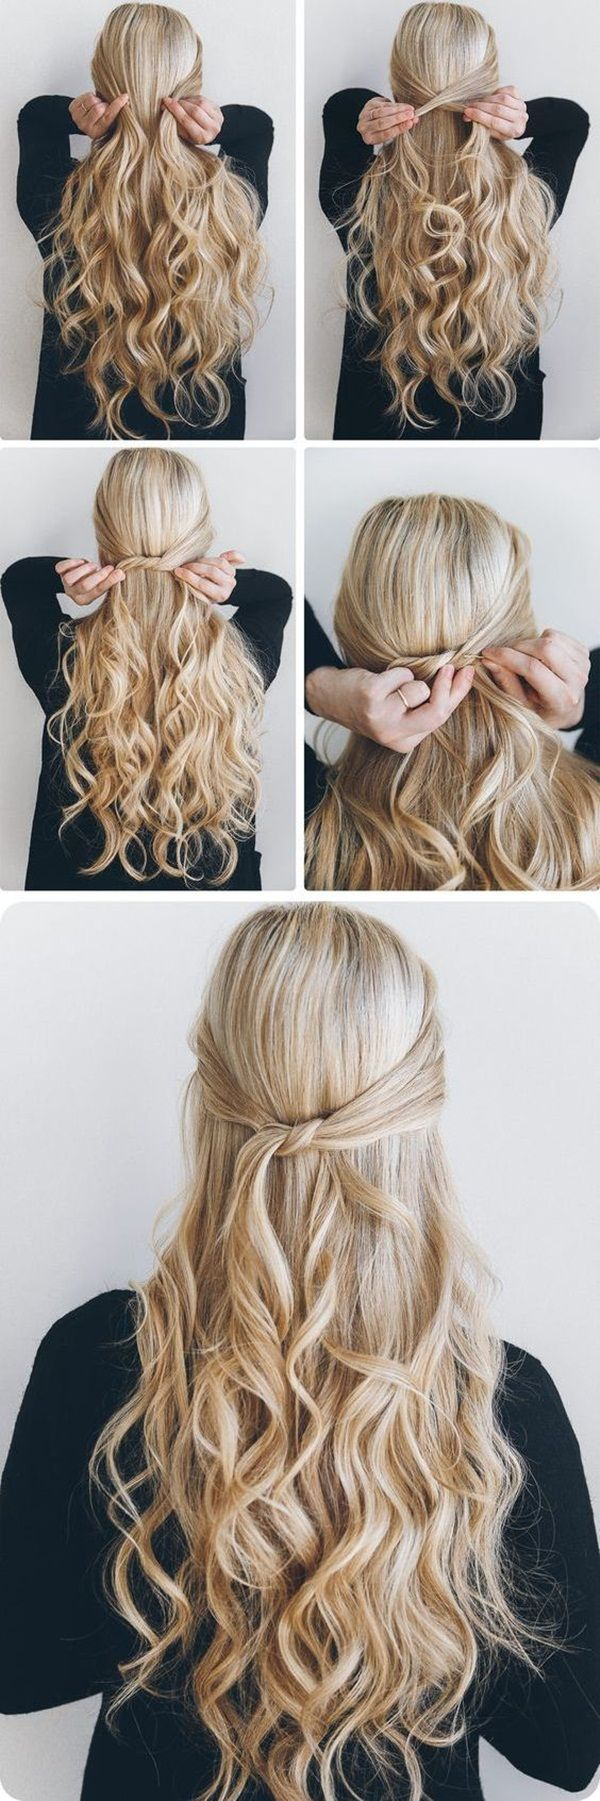 Cute Curly Hairstyles Pinterest trendy styles